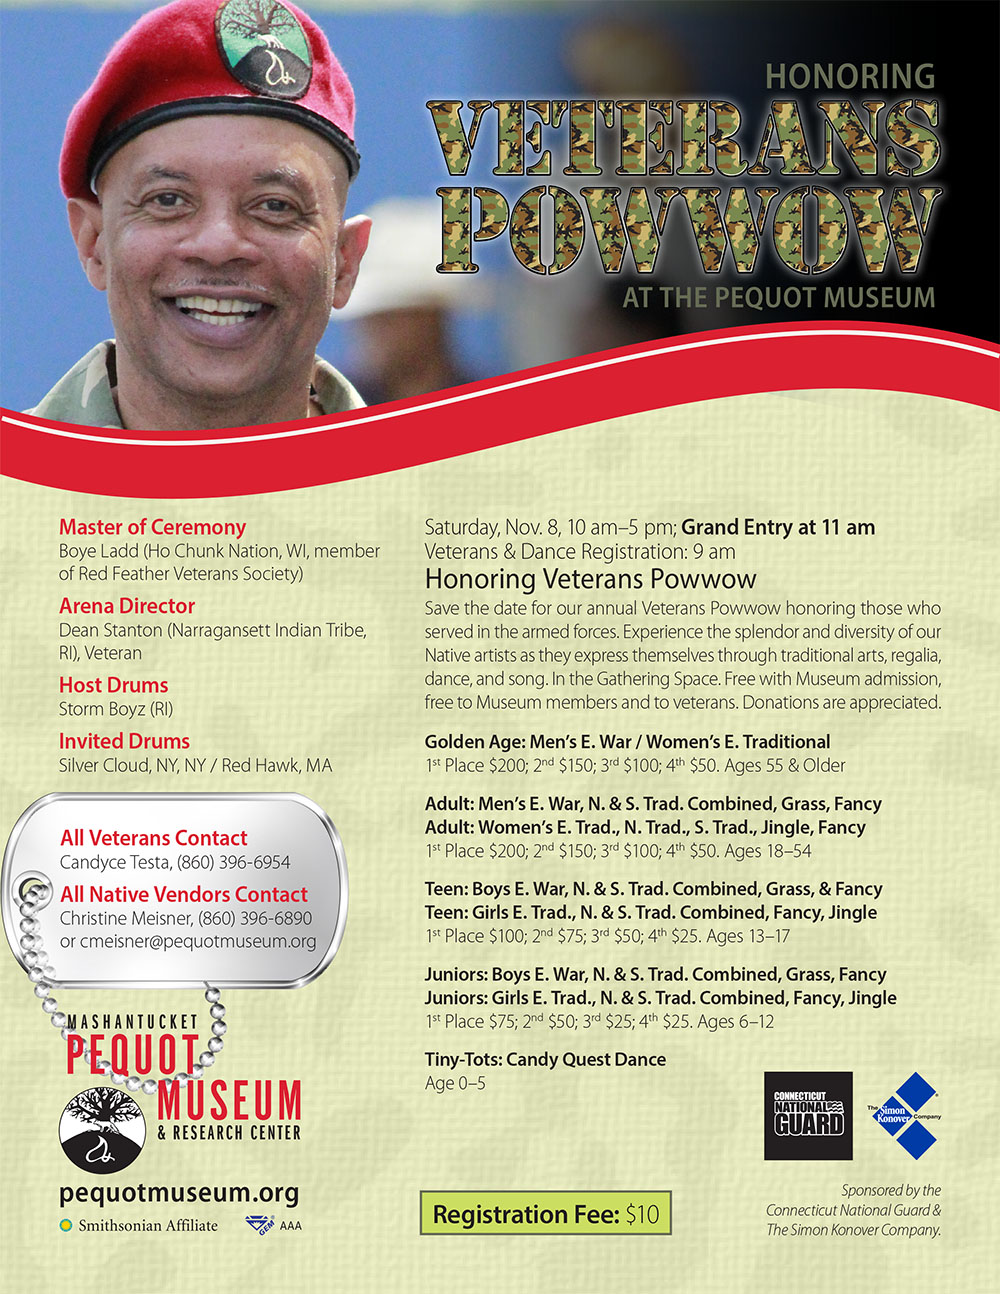 Mashantucket Pequot Museum and Research Center Honoring Veterans Pow Wow